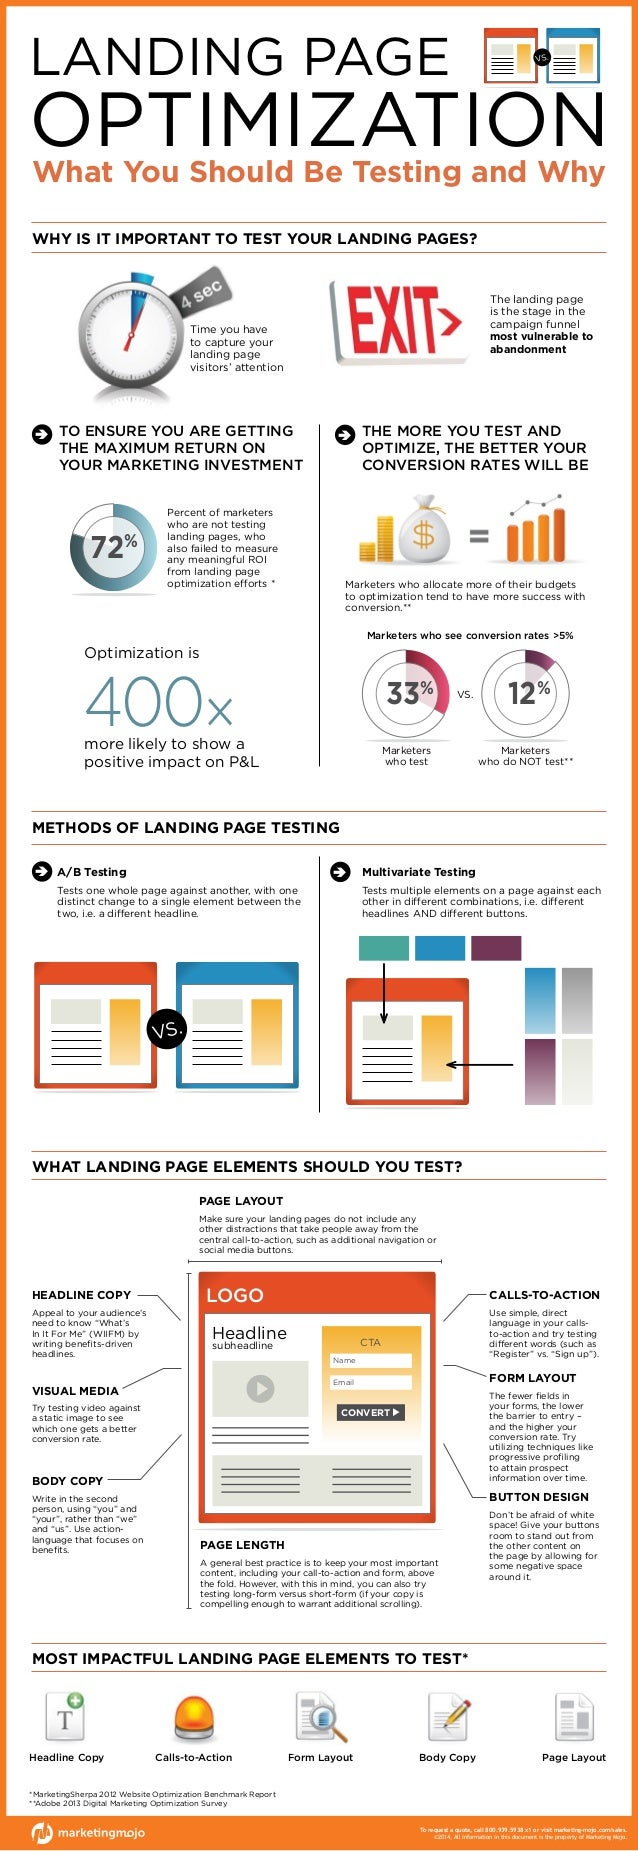 WHAT LANDING PAGE ELEMENTS SHOULD YOU TEST? WHY IS IT IMPORTANT TO TEST YOUR LANDING PAGES? MOST IMPACTFUL LANDING PAGE EL...